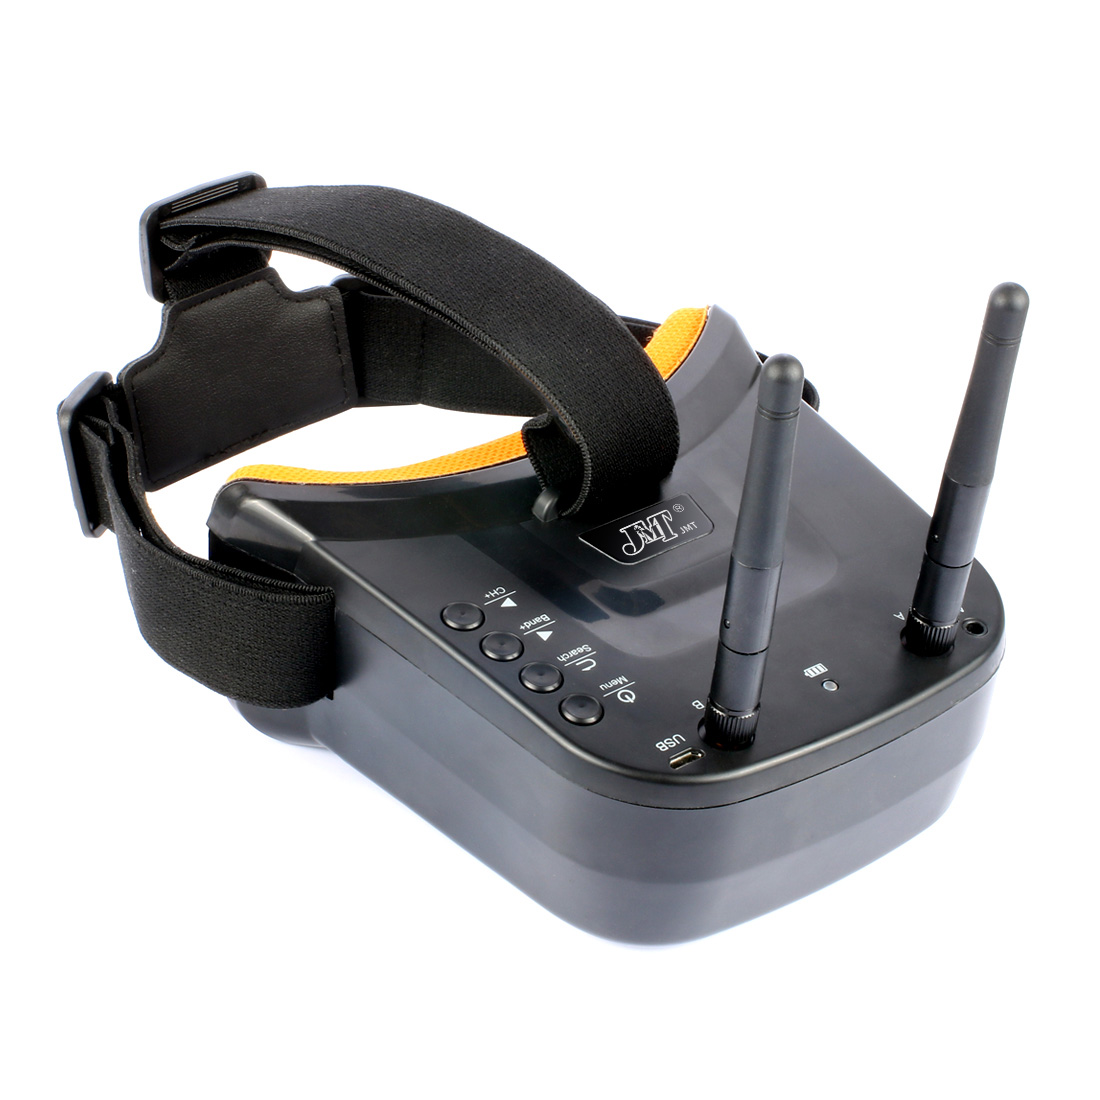 JMT Mini FPV Goggles 3 inch 480 x 320 Display Double Antenna 5.8G 40CH Built-in 3.7V 1200mAh Battery for Racing Drone Model goldfrapp goldfrapp seventh tree limited edition cd dvd